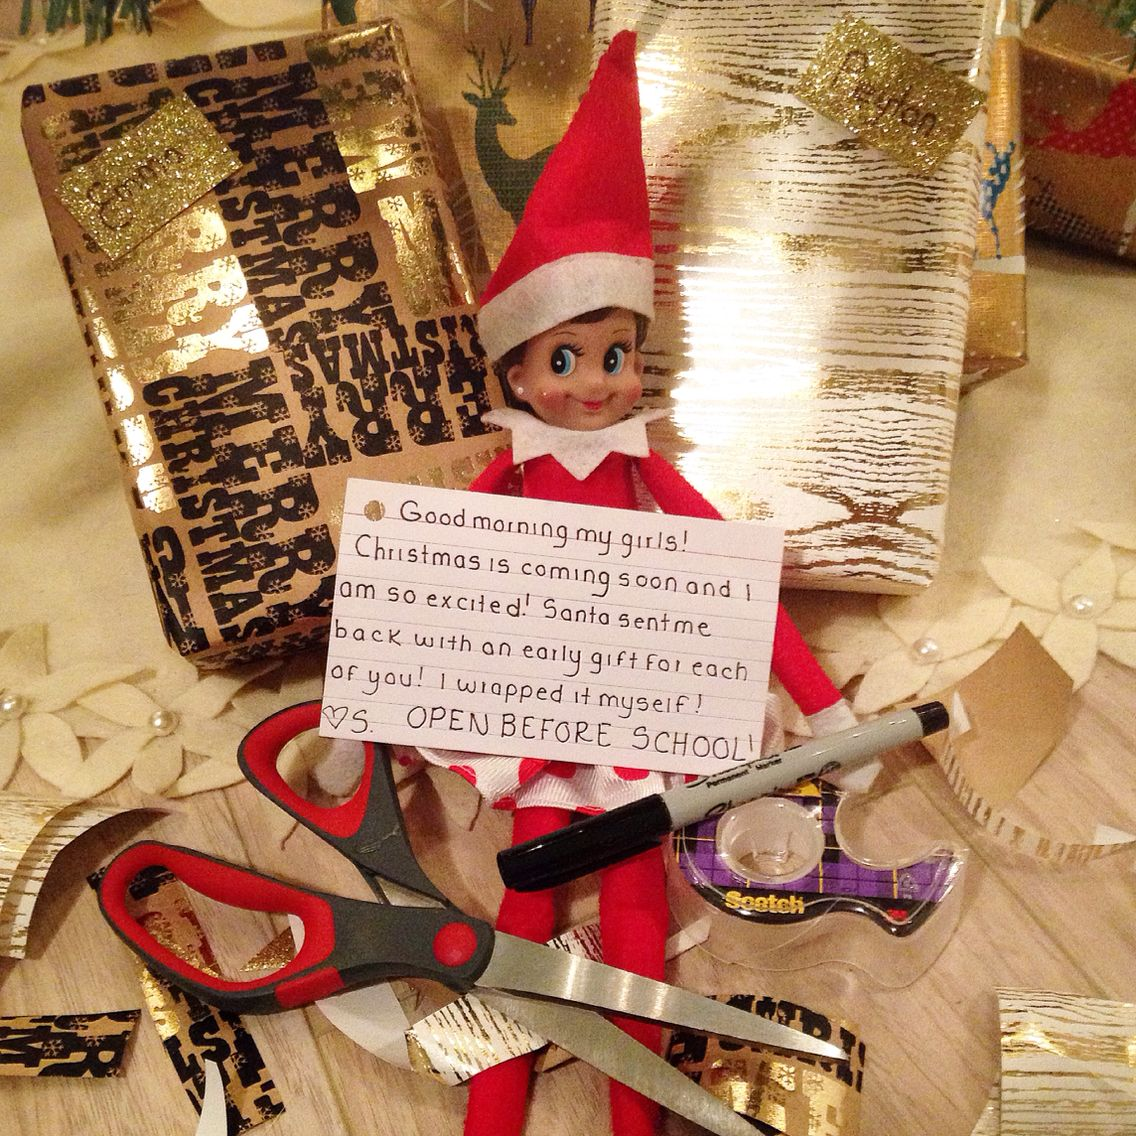 Elf brought back an early Christmas gift from Santas Workshop for ...